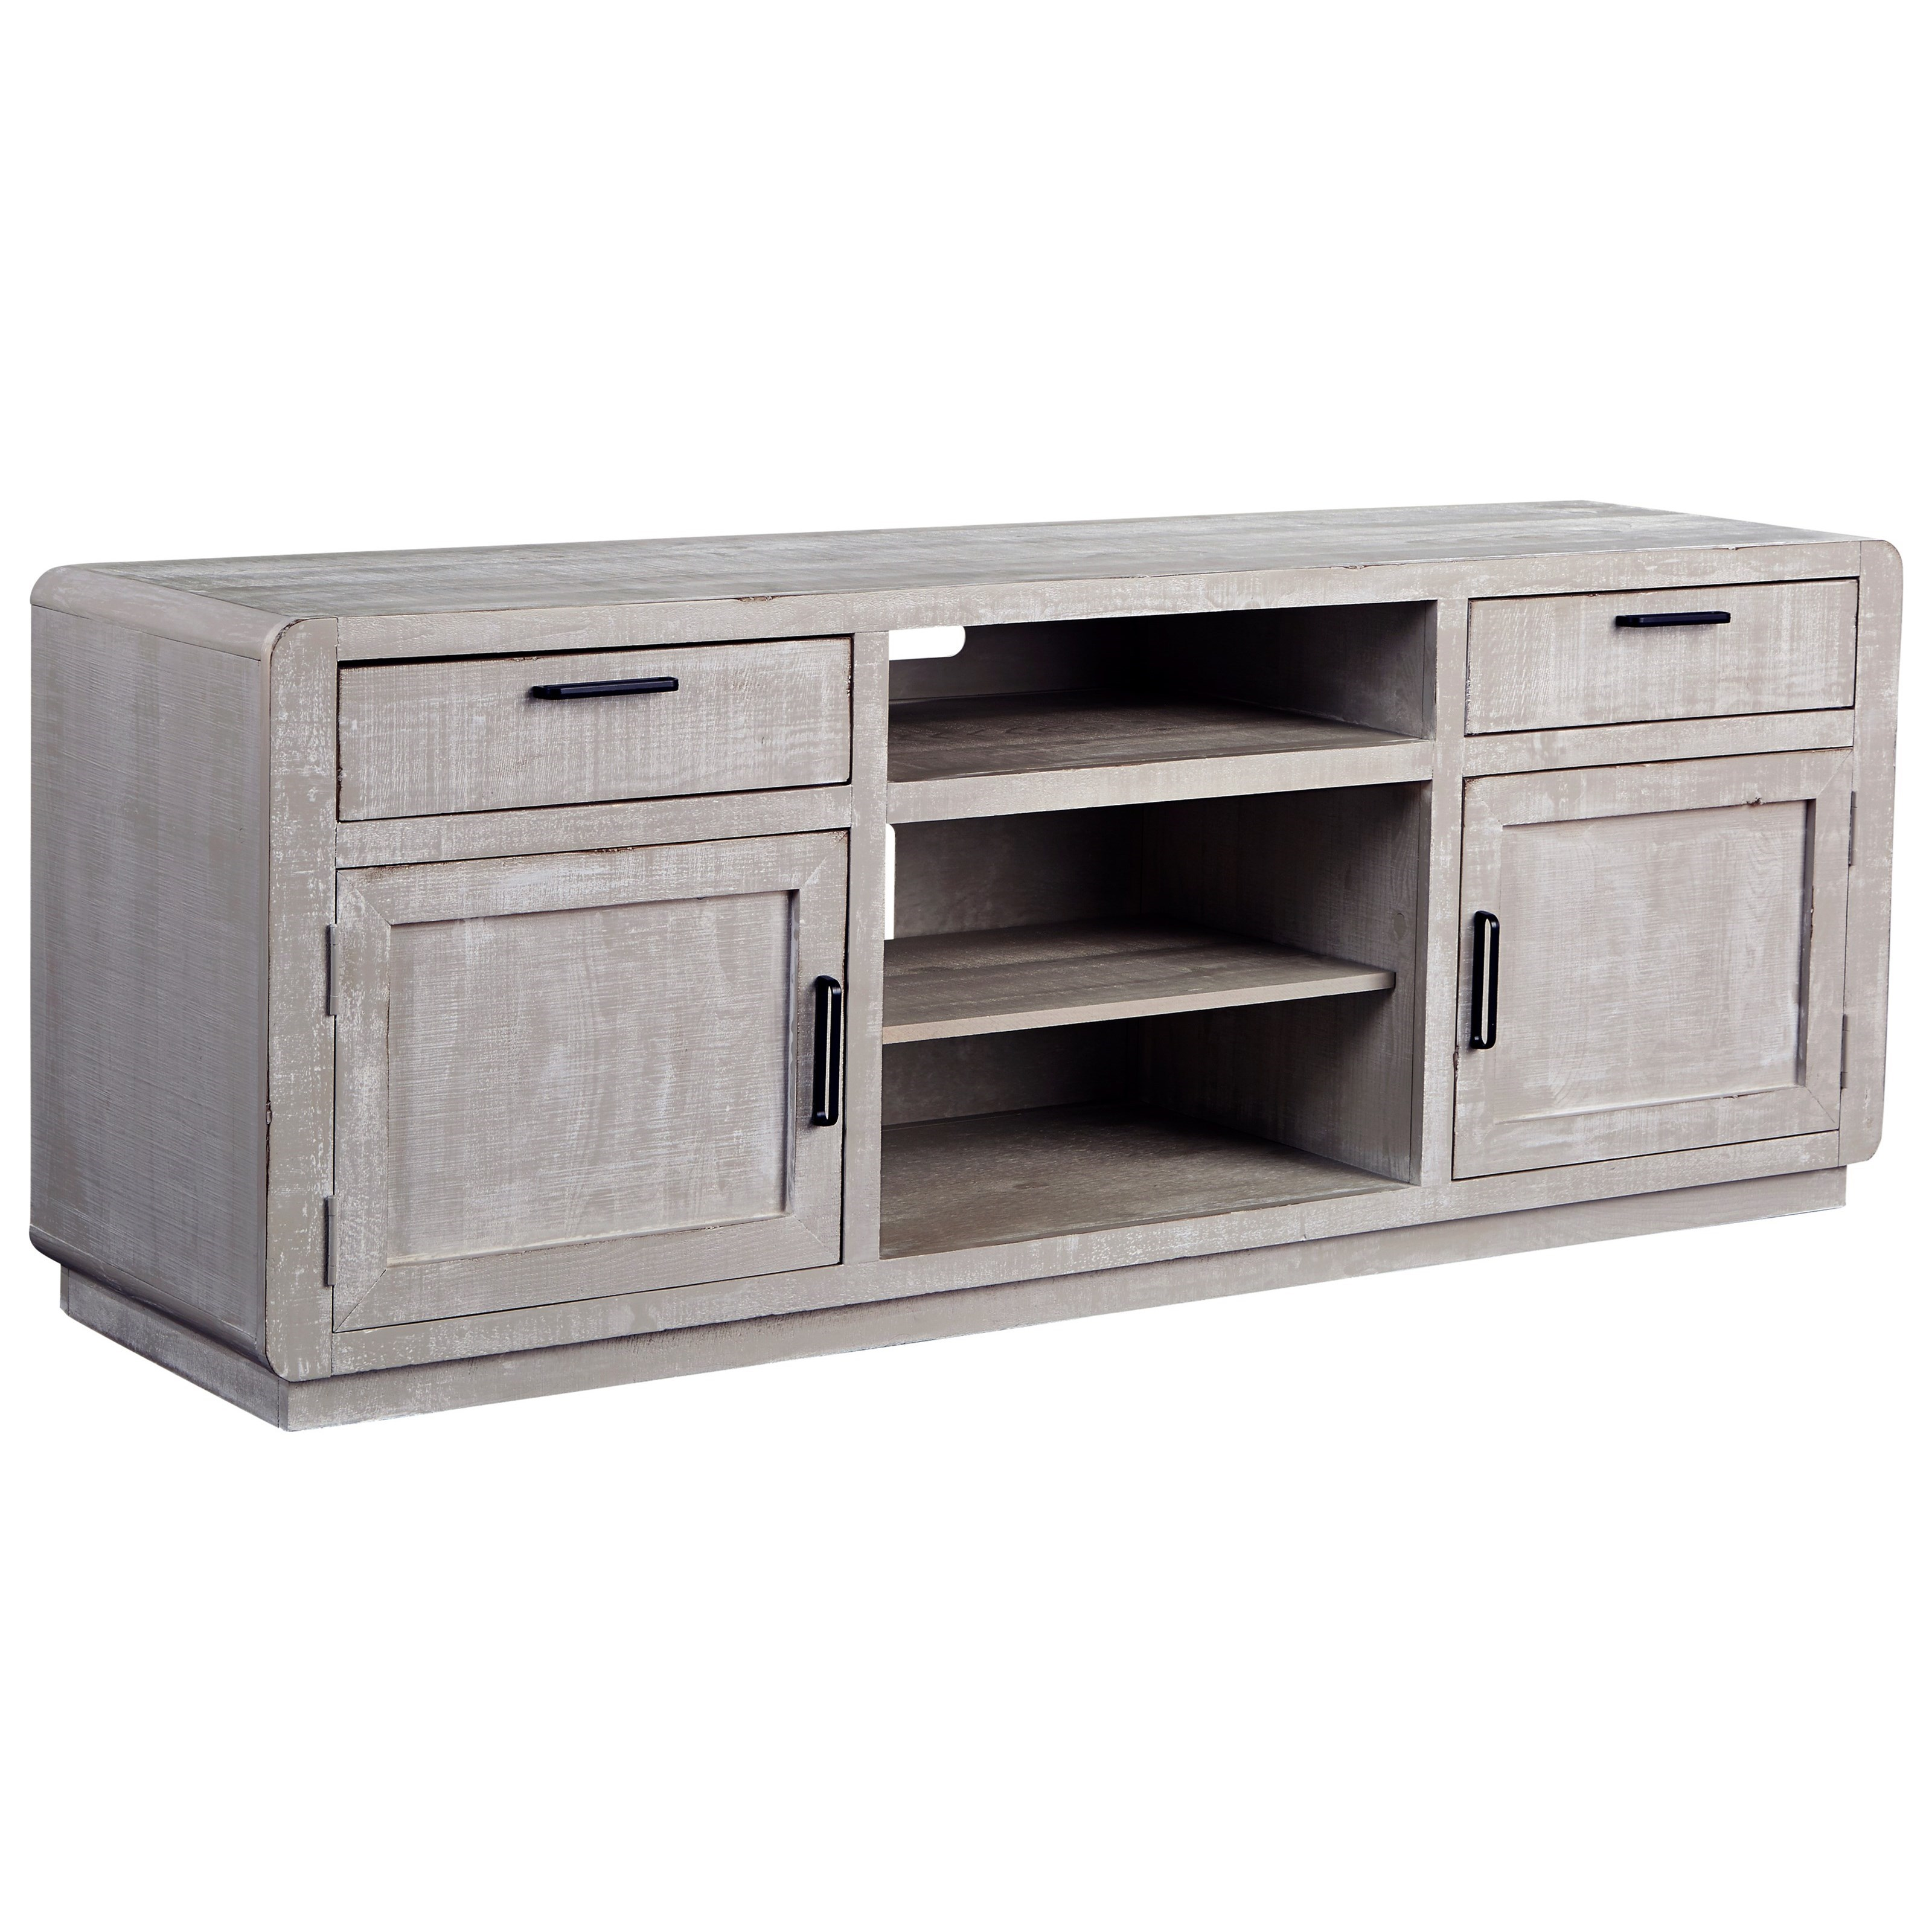 "Allure 74"" Console by Progressive Furniture at Simply Home by Lindy's"